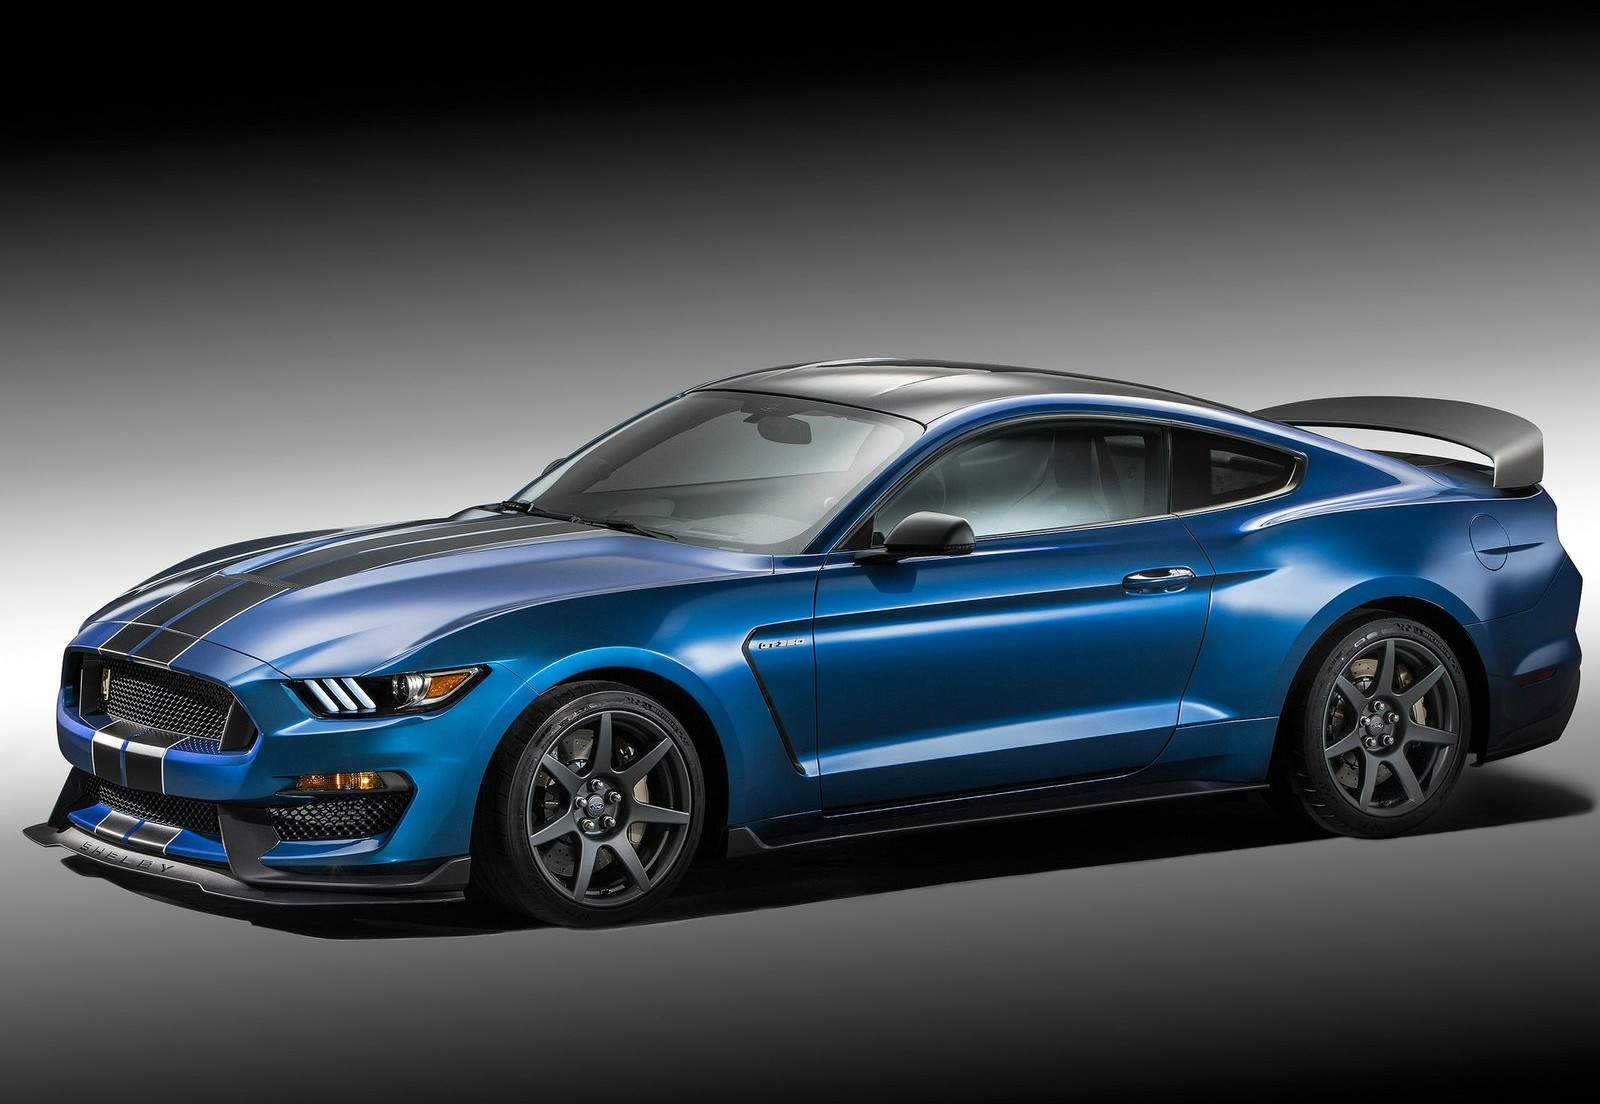 2021 Ford Mustang Lineup Leaked: The Shelby GT350 Is Out ...